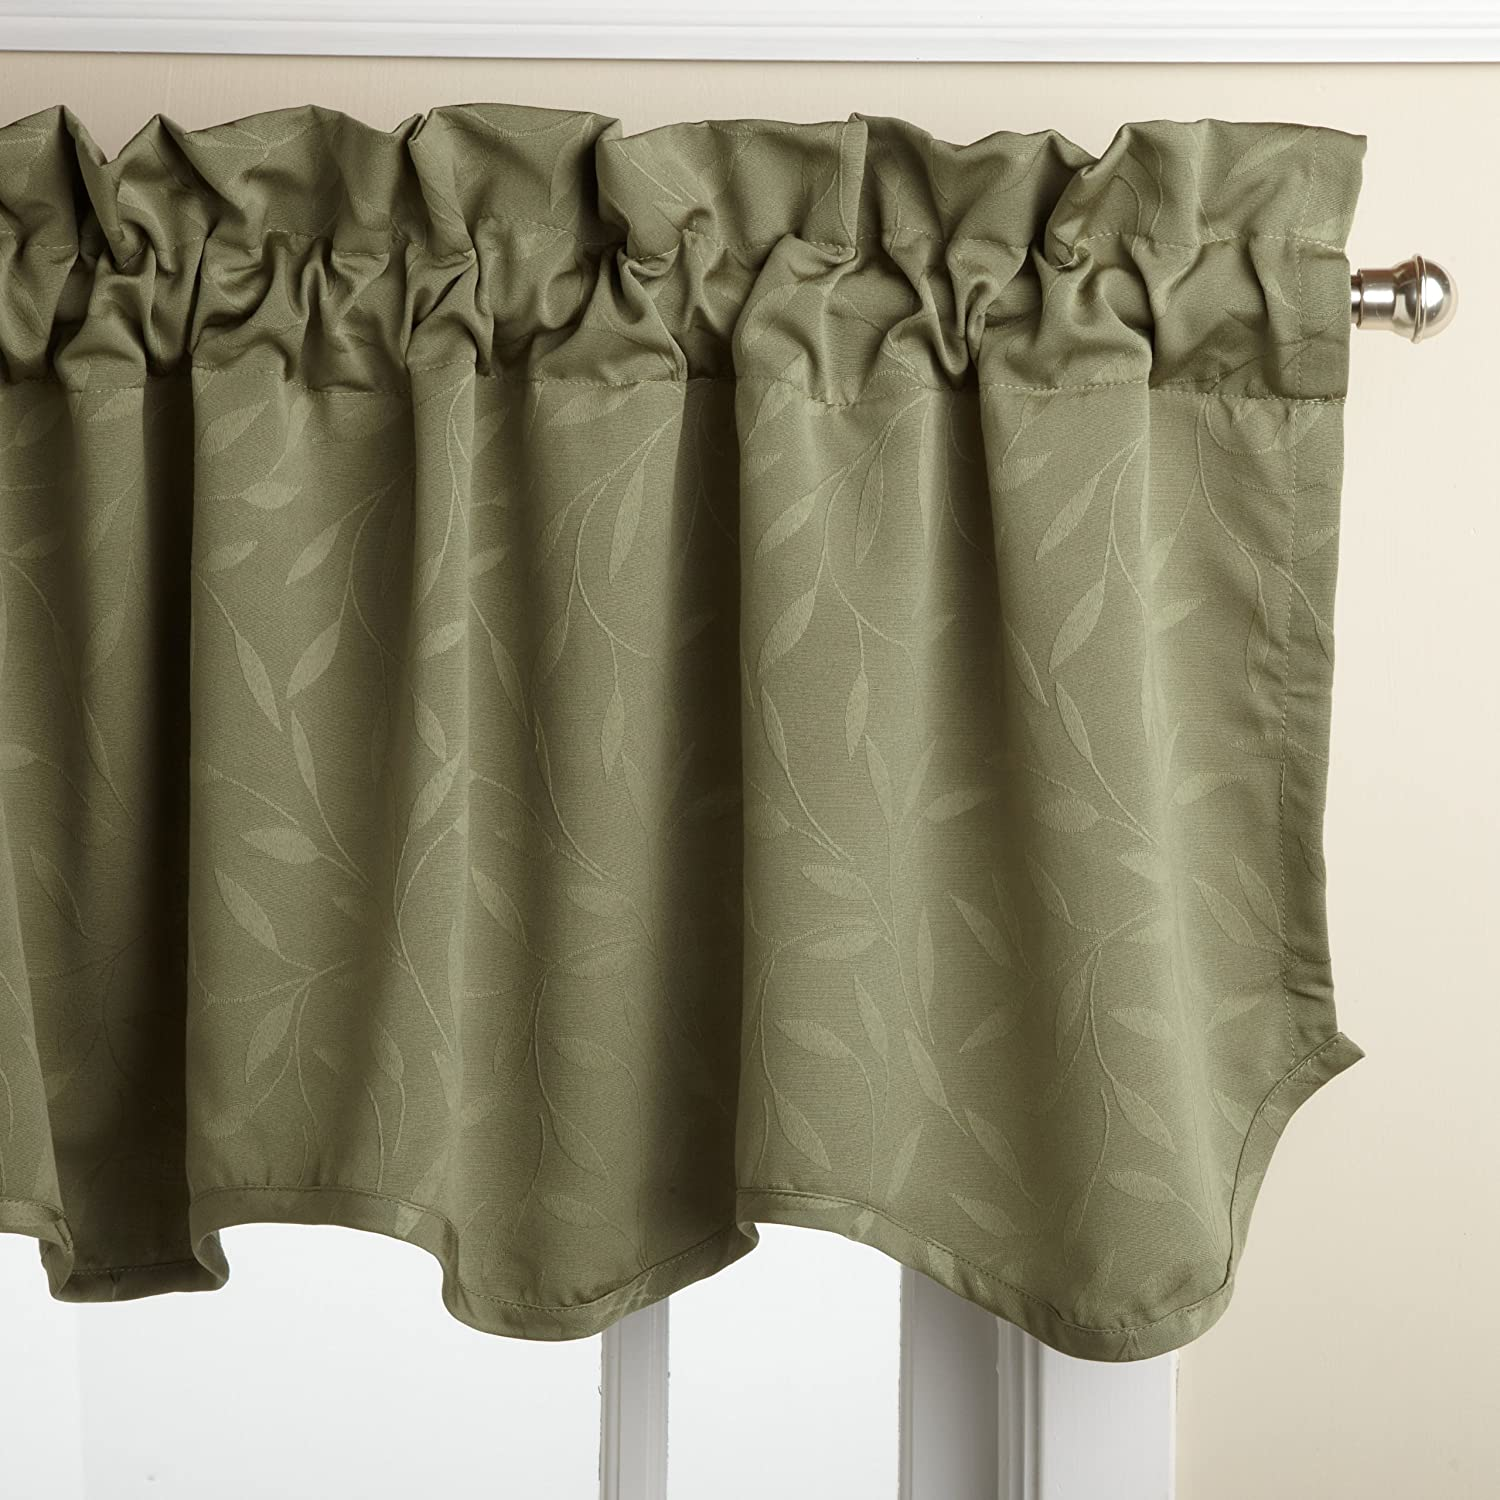 x window treatment v coastal green mist p valance valances antigua aqua pleated